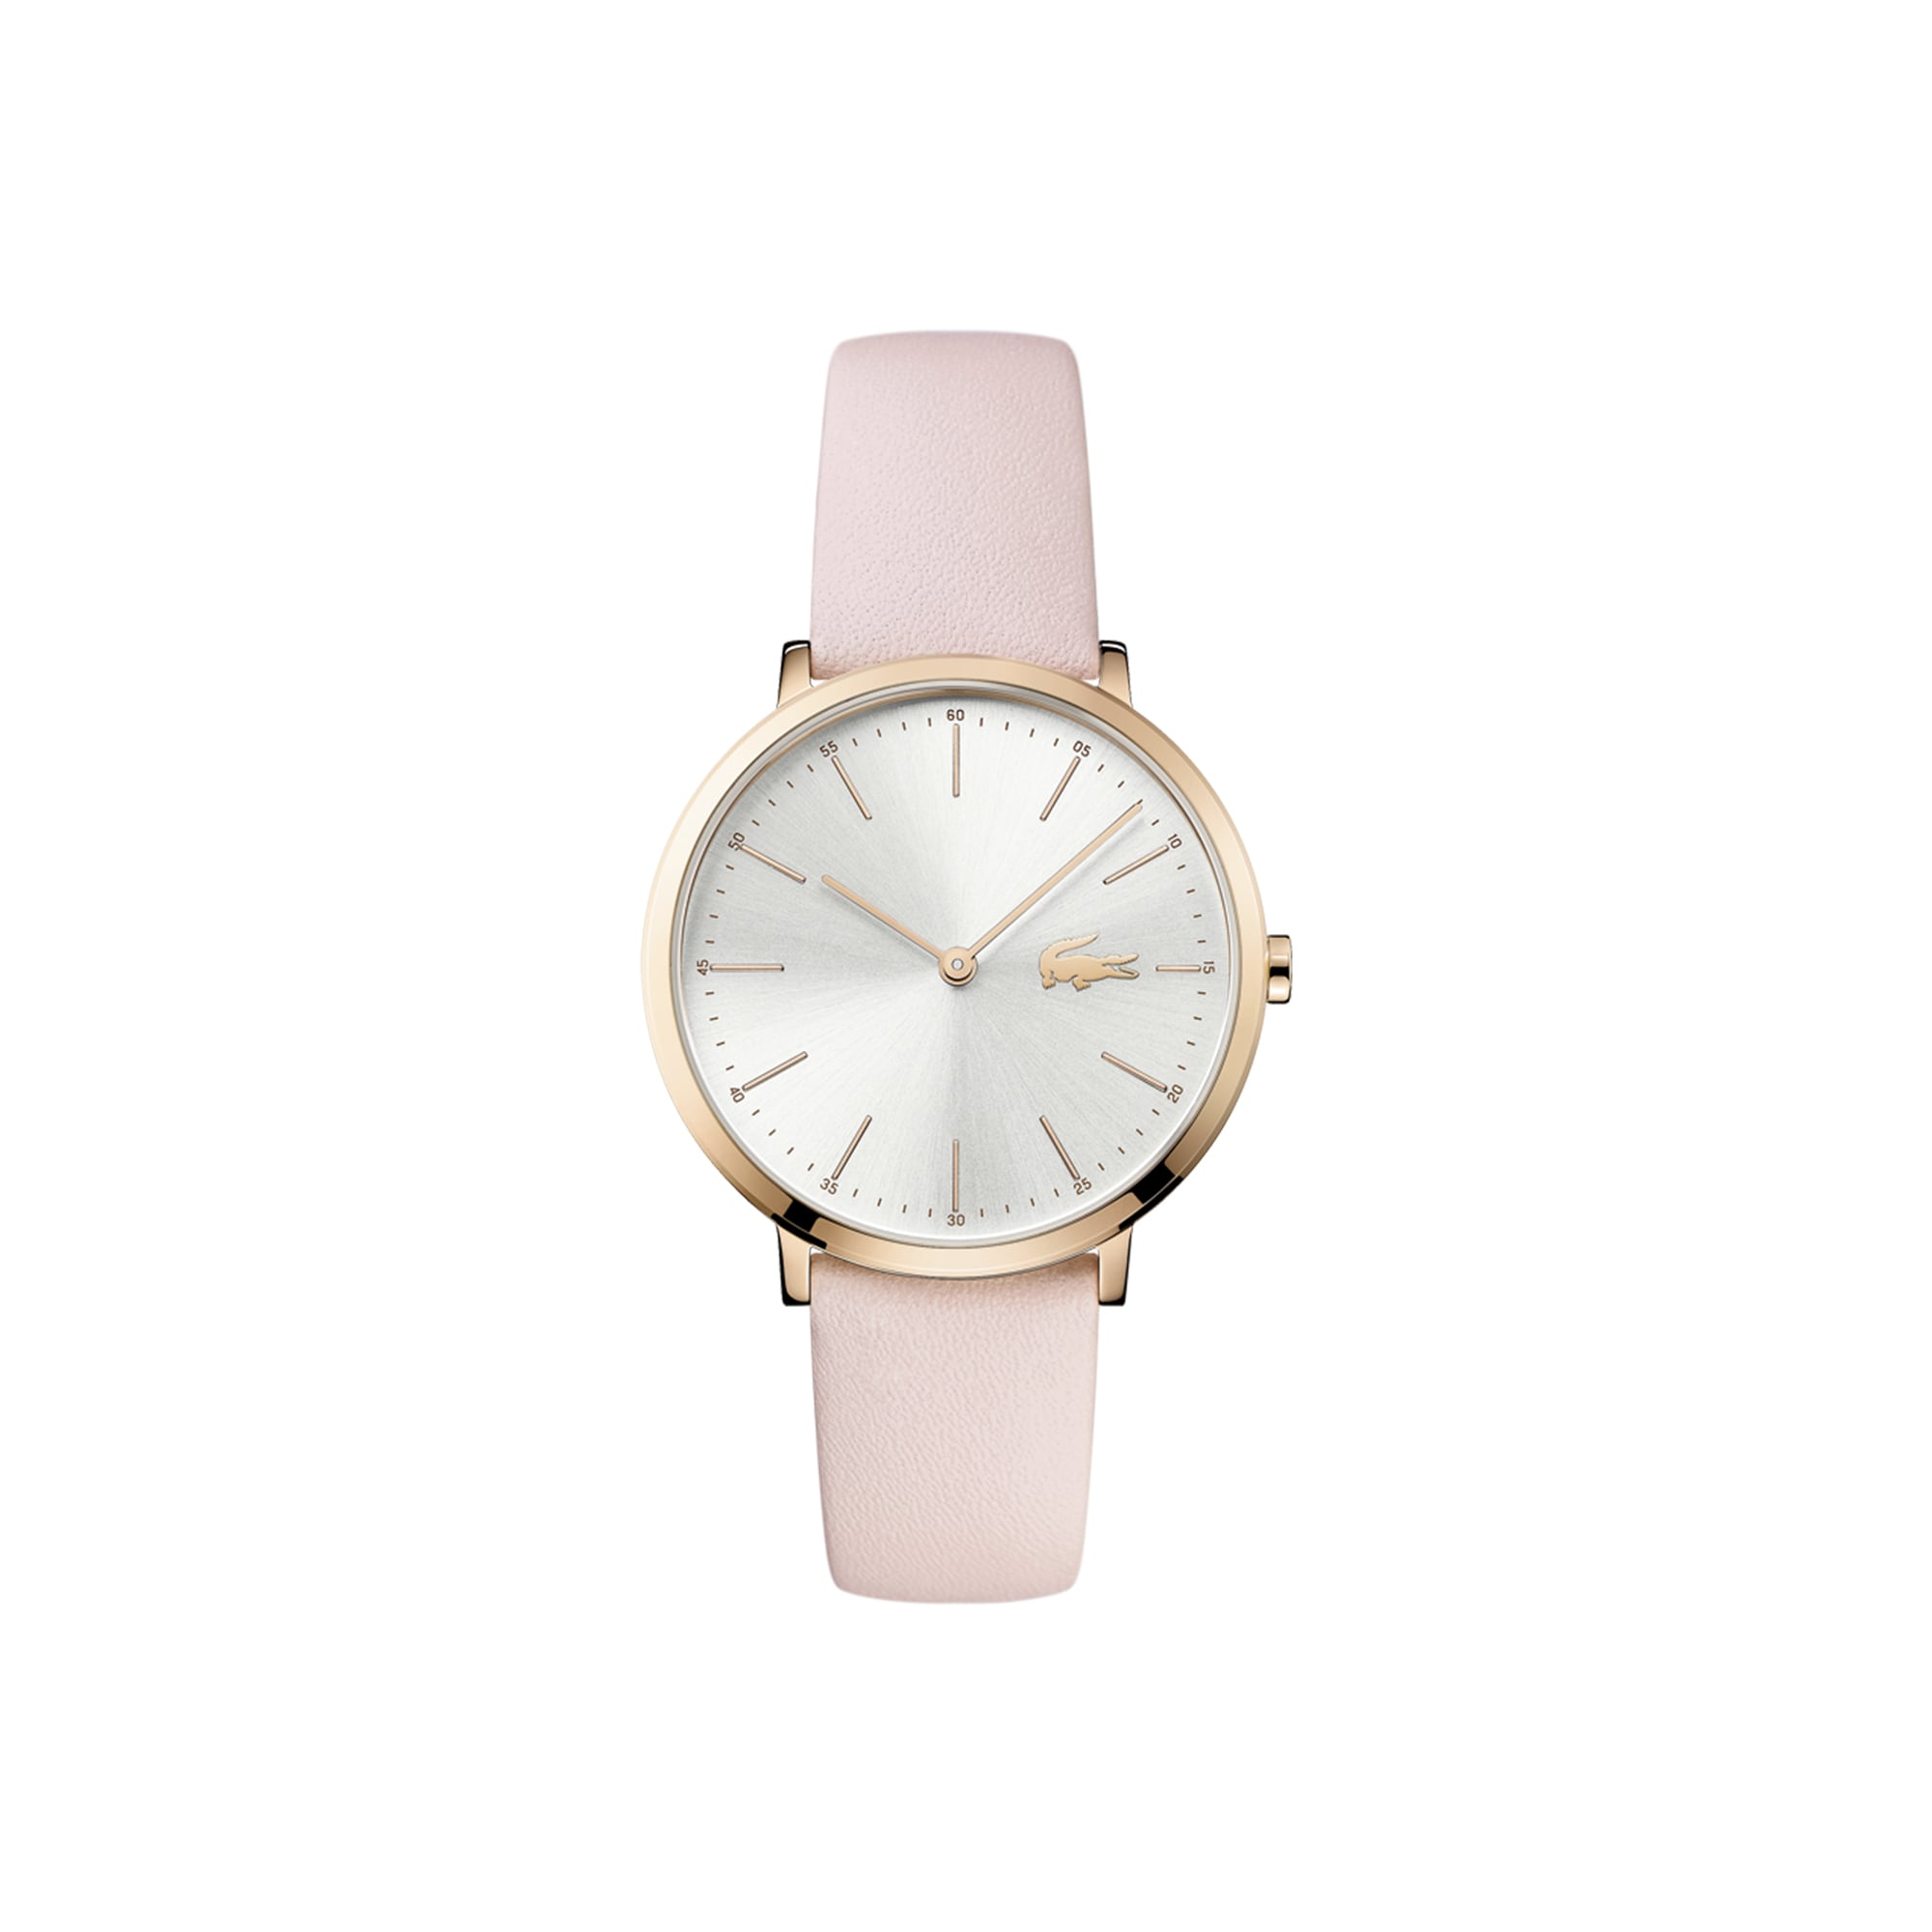 Women's Moon Watch with Pink Leather Strap